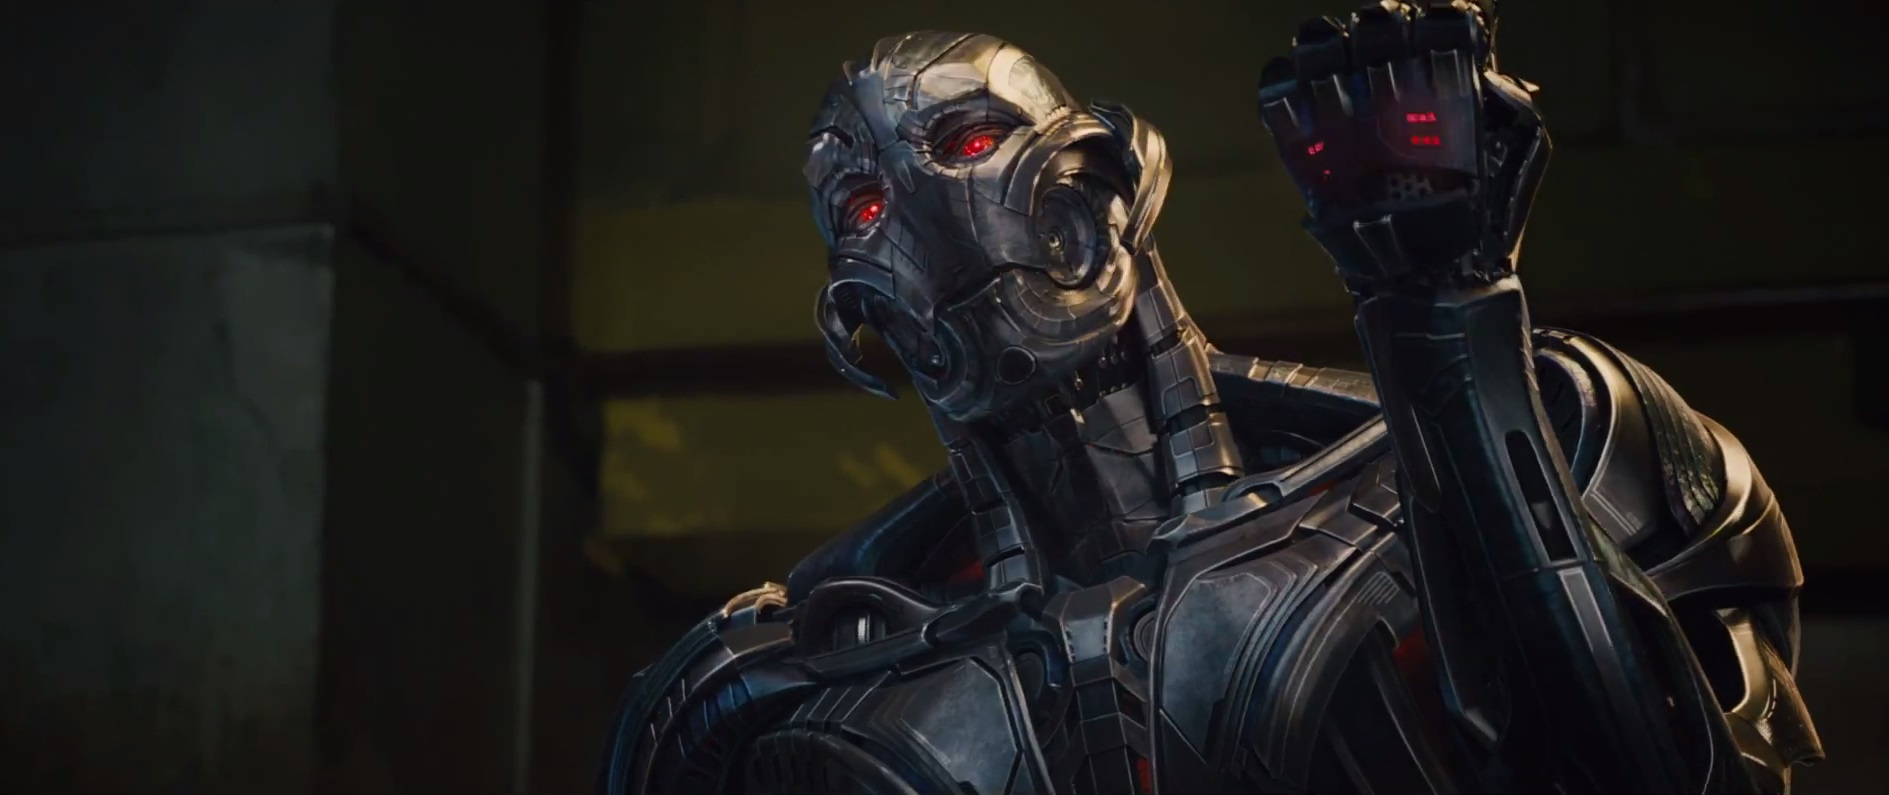 Facebook AI Robots Shut Down After They Secretly 'Invent Their Own Language' ultron